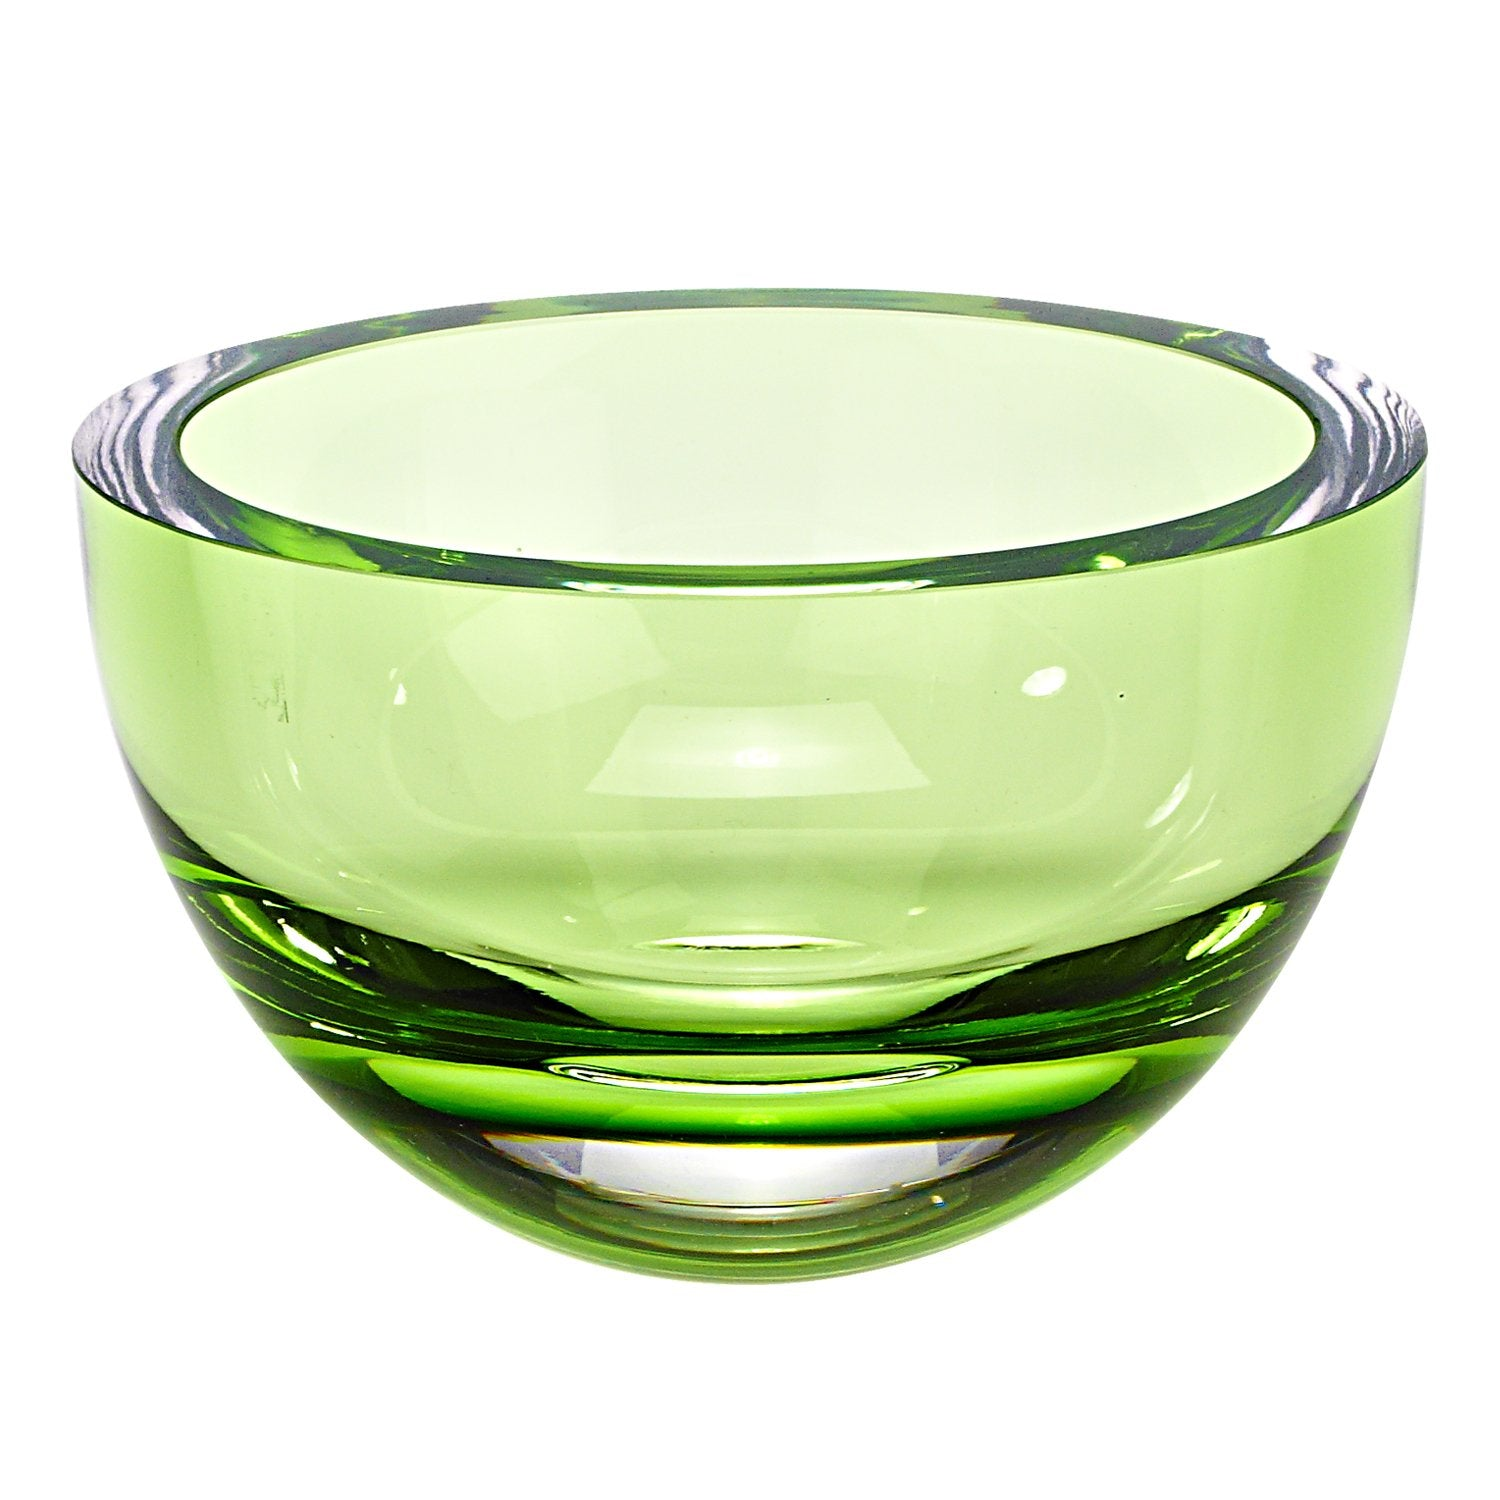 "6"" Mouth Blown Crystal European Made Lead Free Spring Green Bowl"